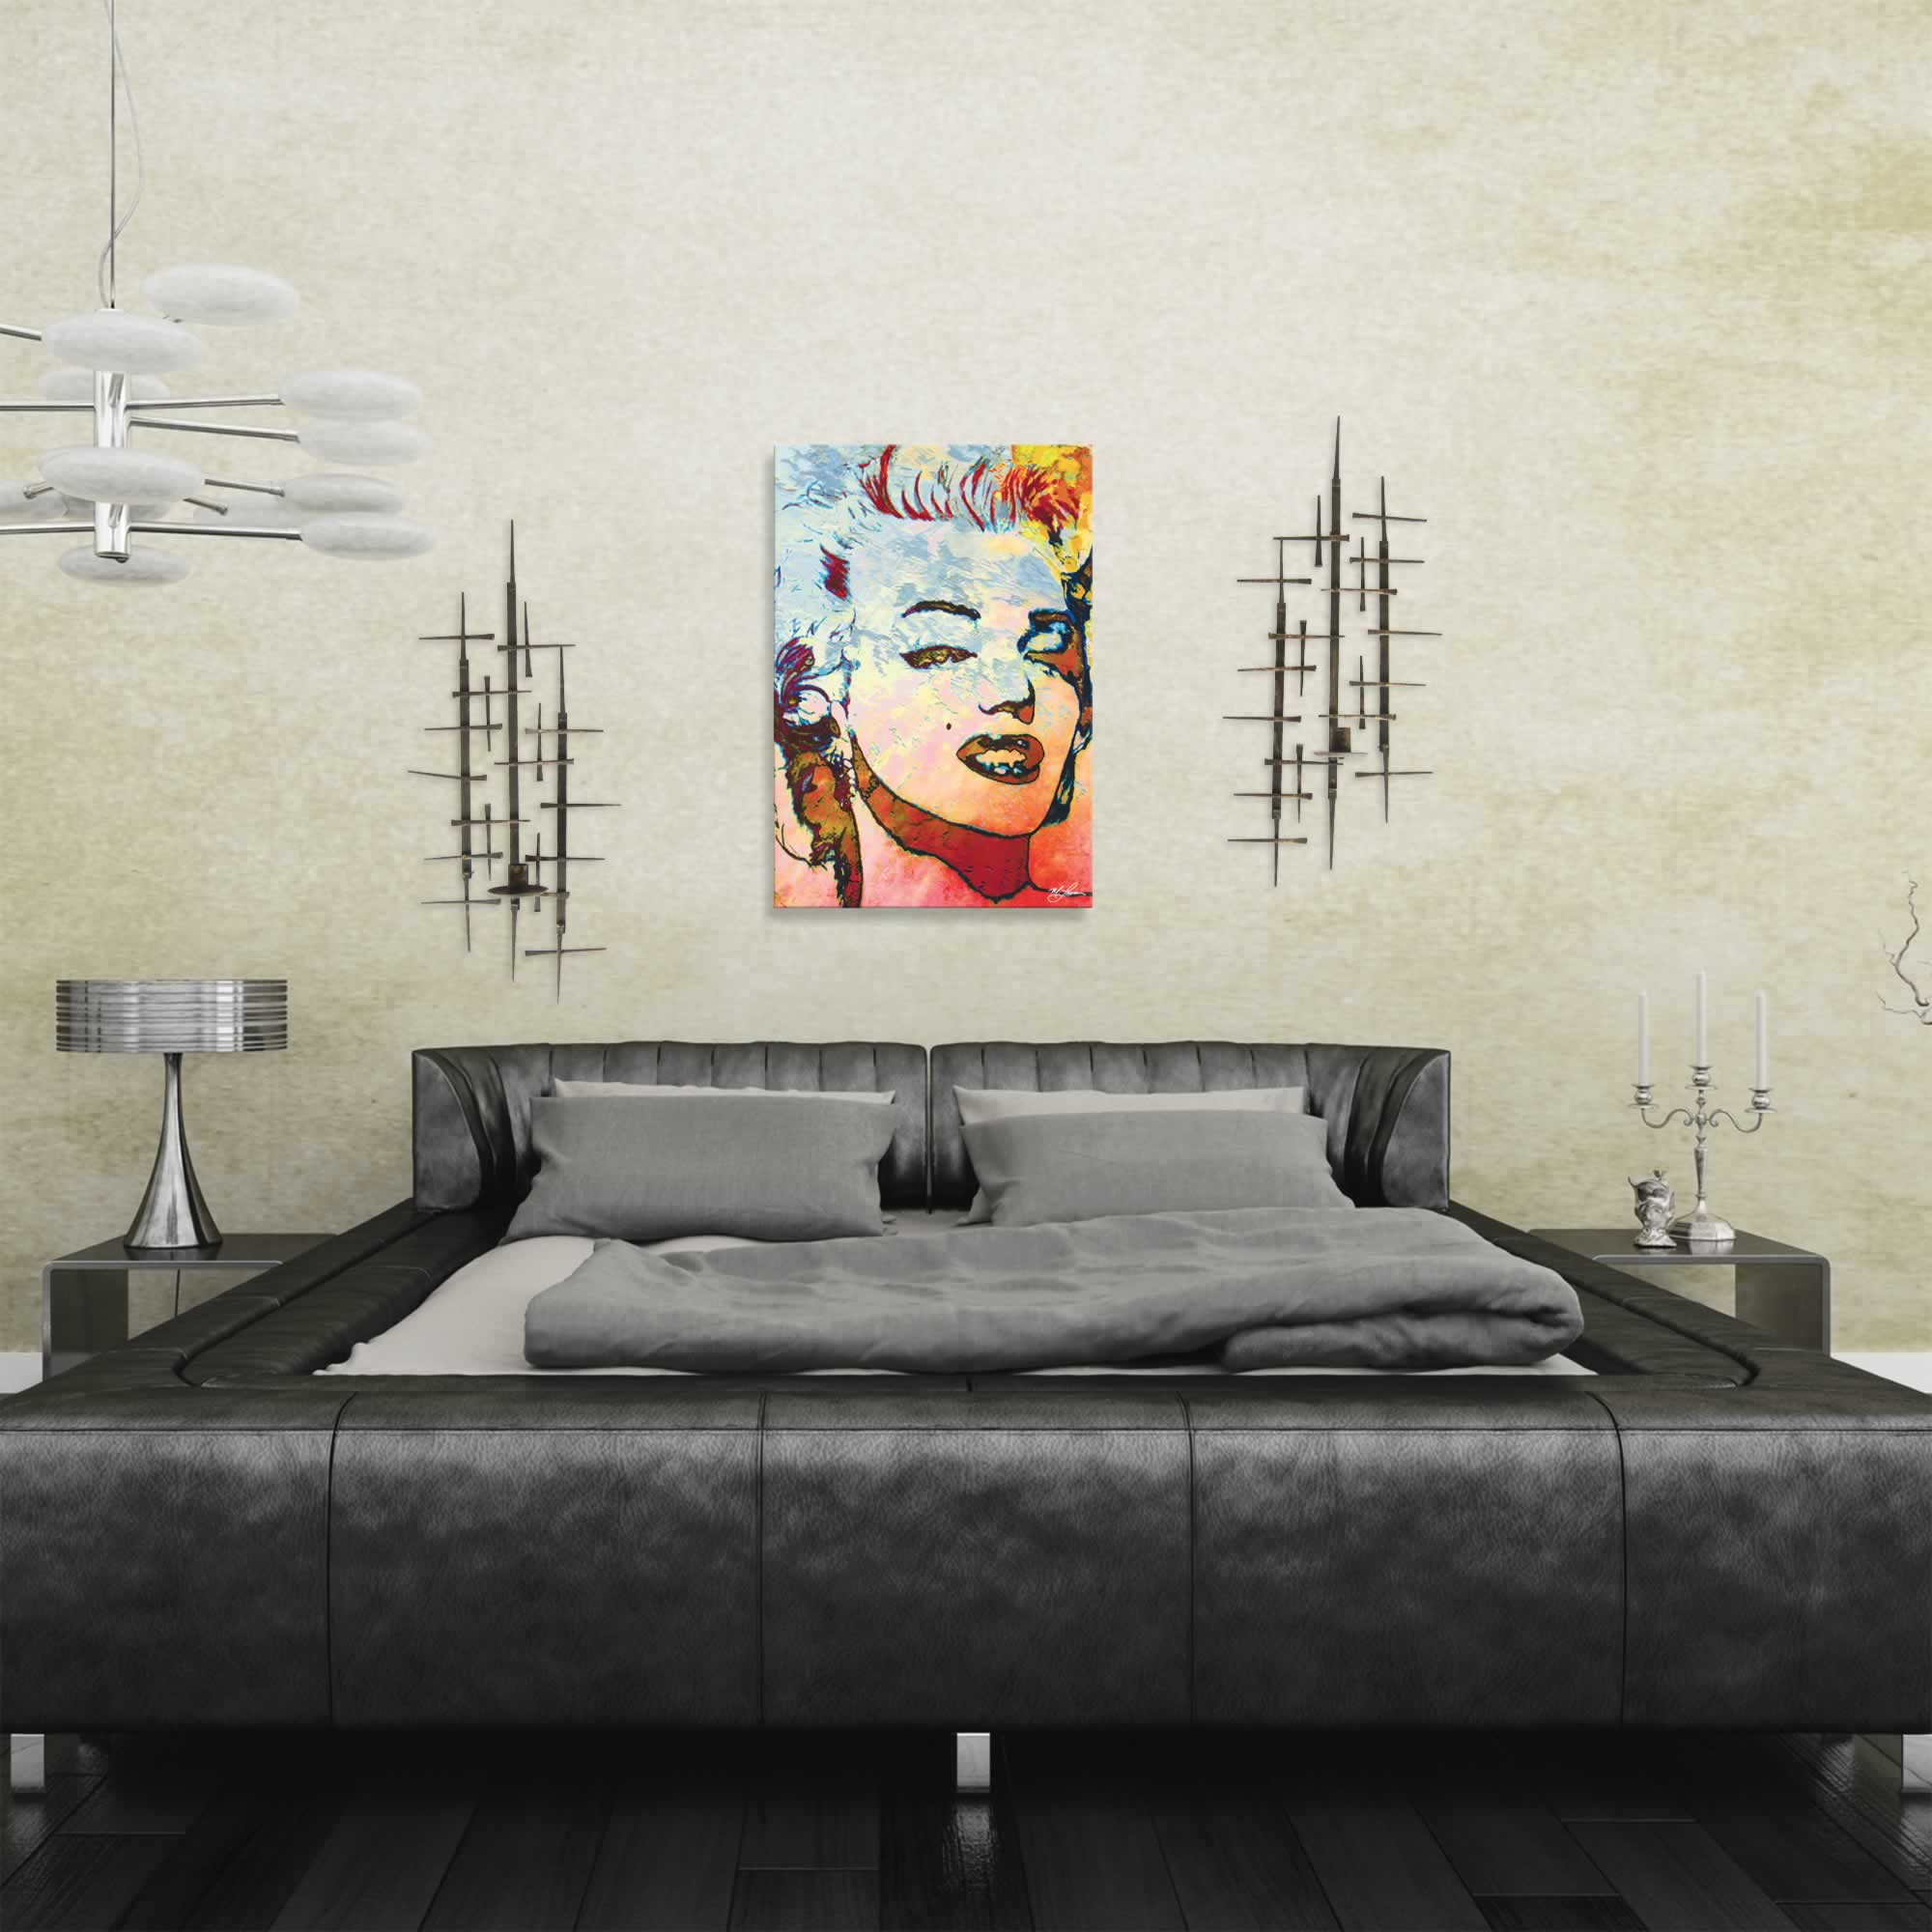 Mark Lewis 'Marilyn Monroe Red' Limited Edition Pop Art Print on Metal or Acrylic - Alternate View 1